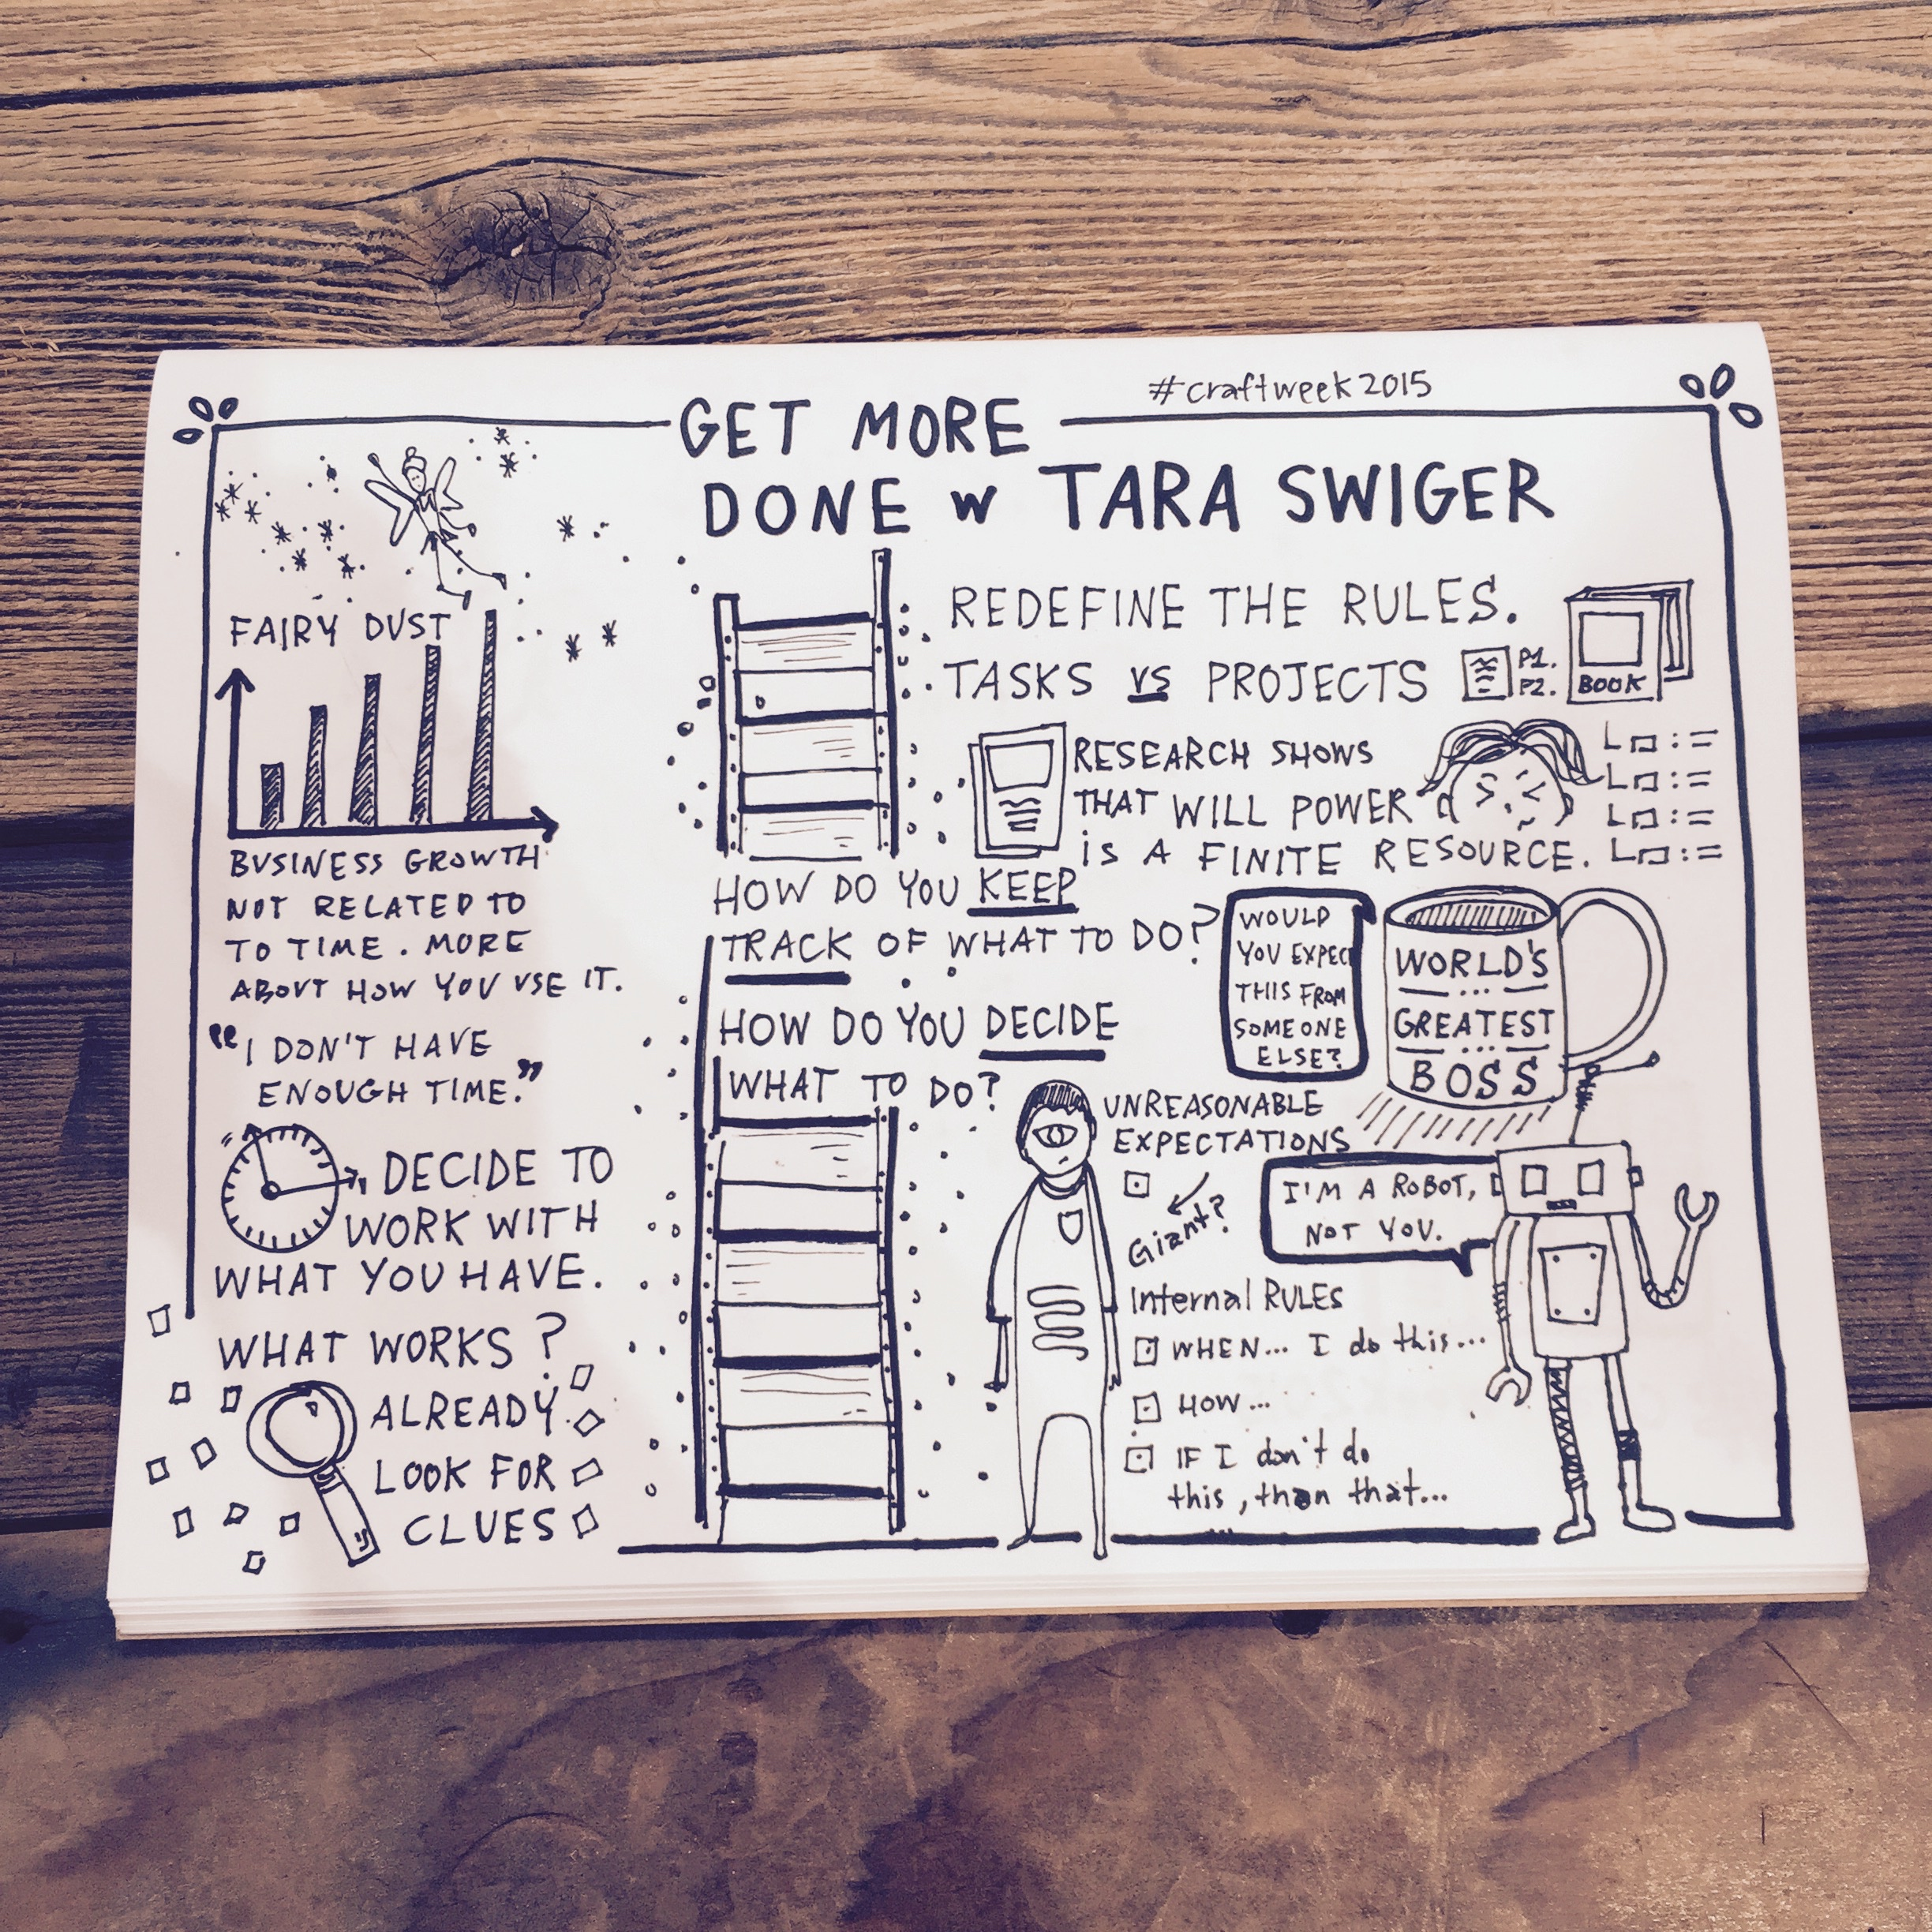 Tara Swiger_How to Get More Done Part 2